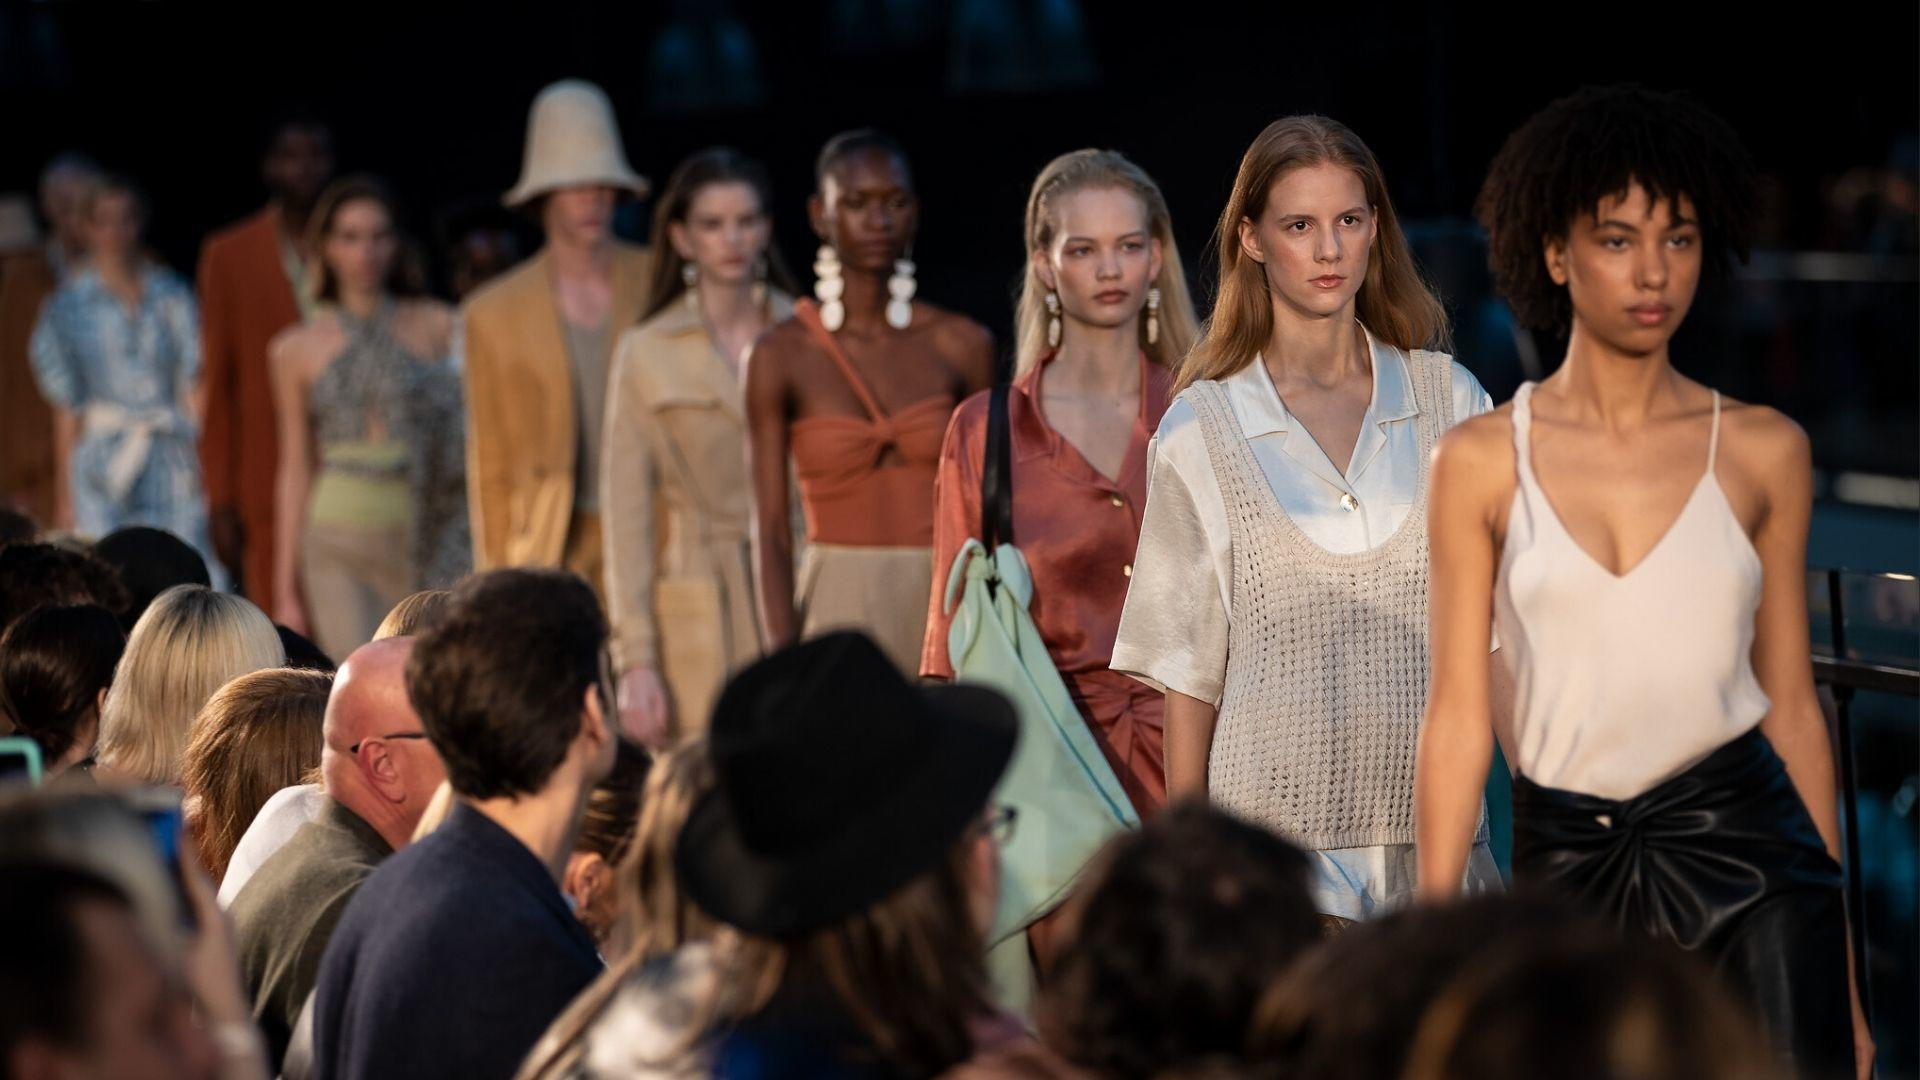 All The Highlights From Budapest Fashion Week S/S20